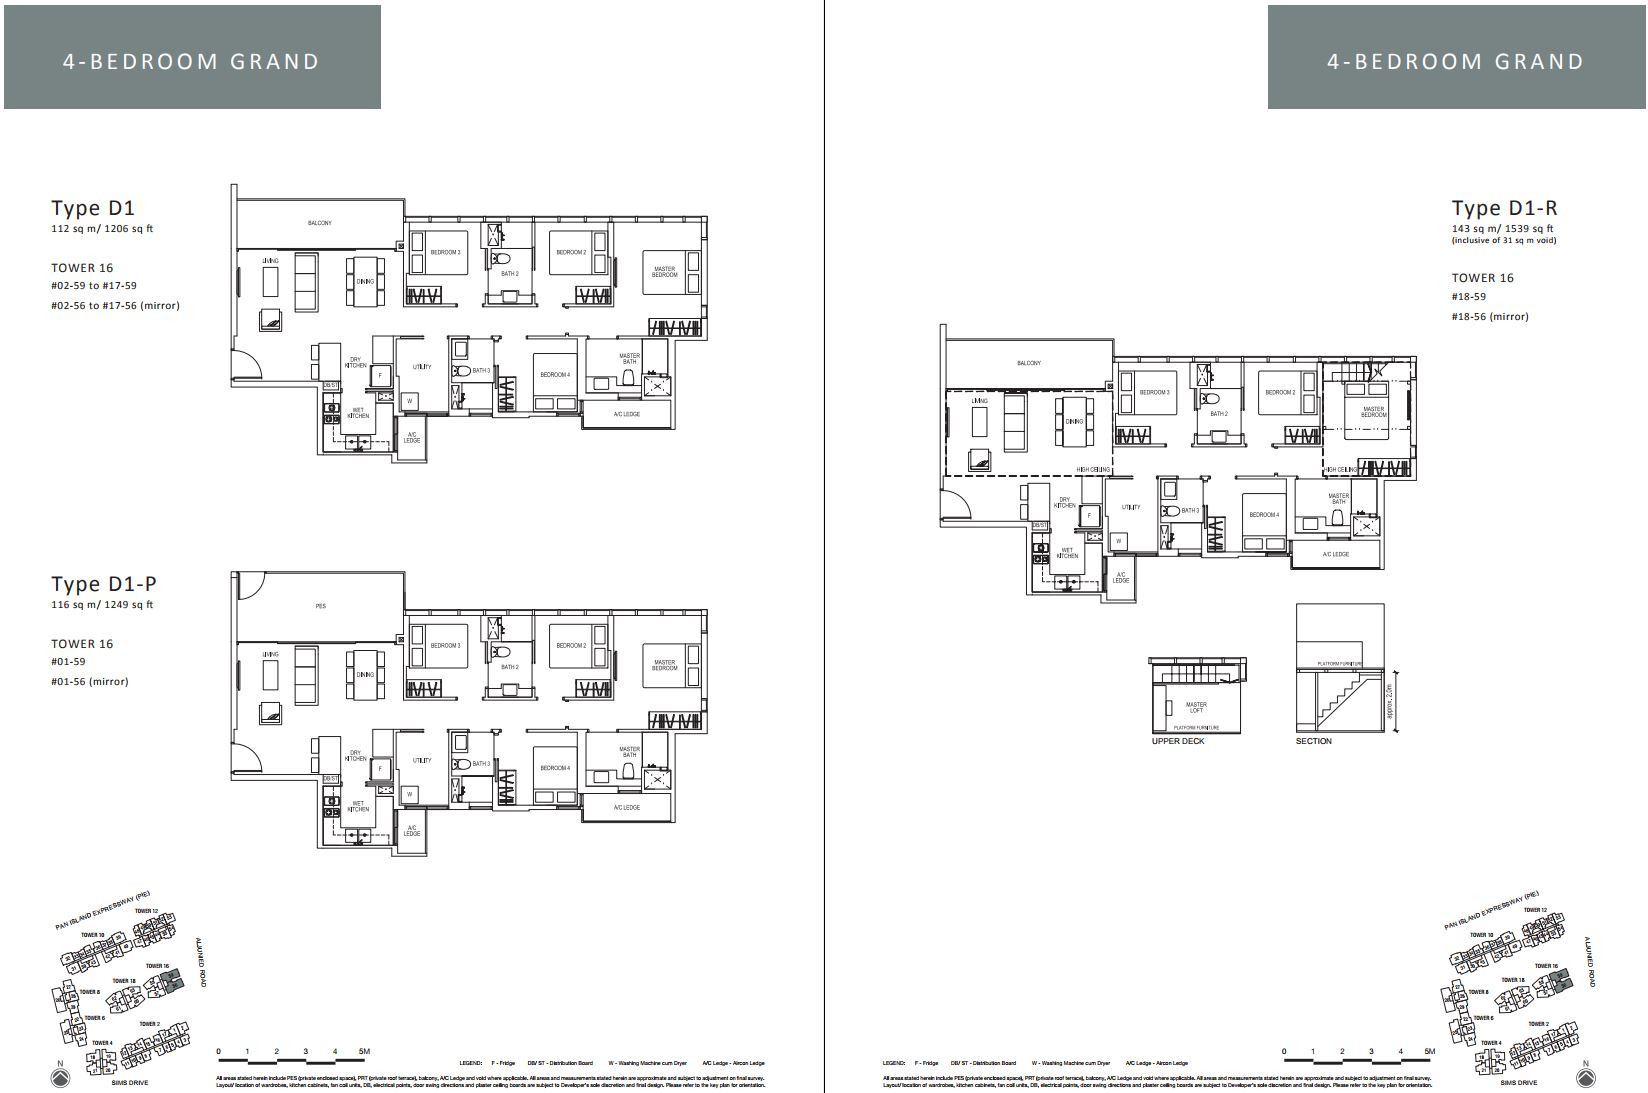 Sims Urban Oasis FloorPlan - 4 Bedroom Grand